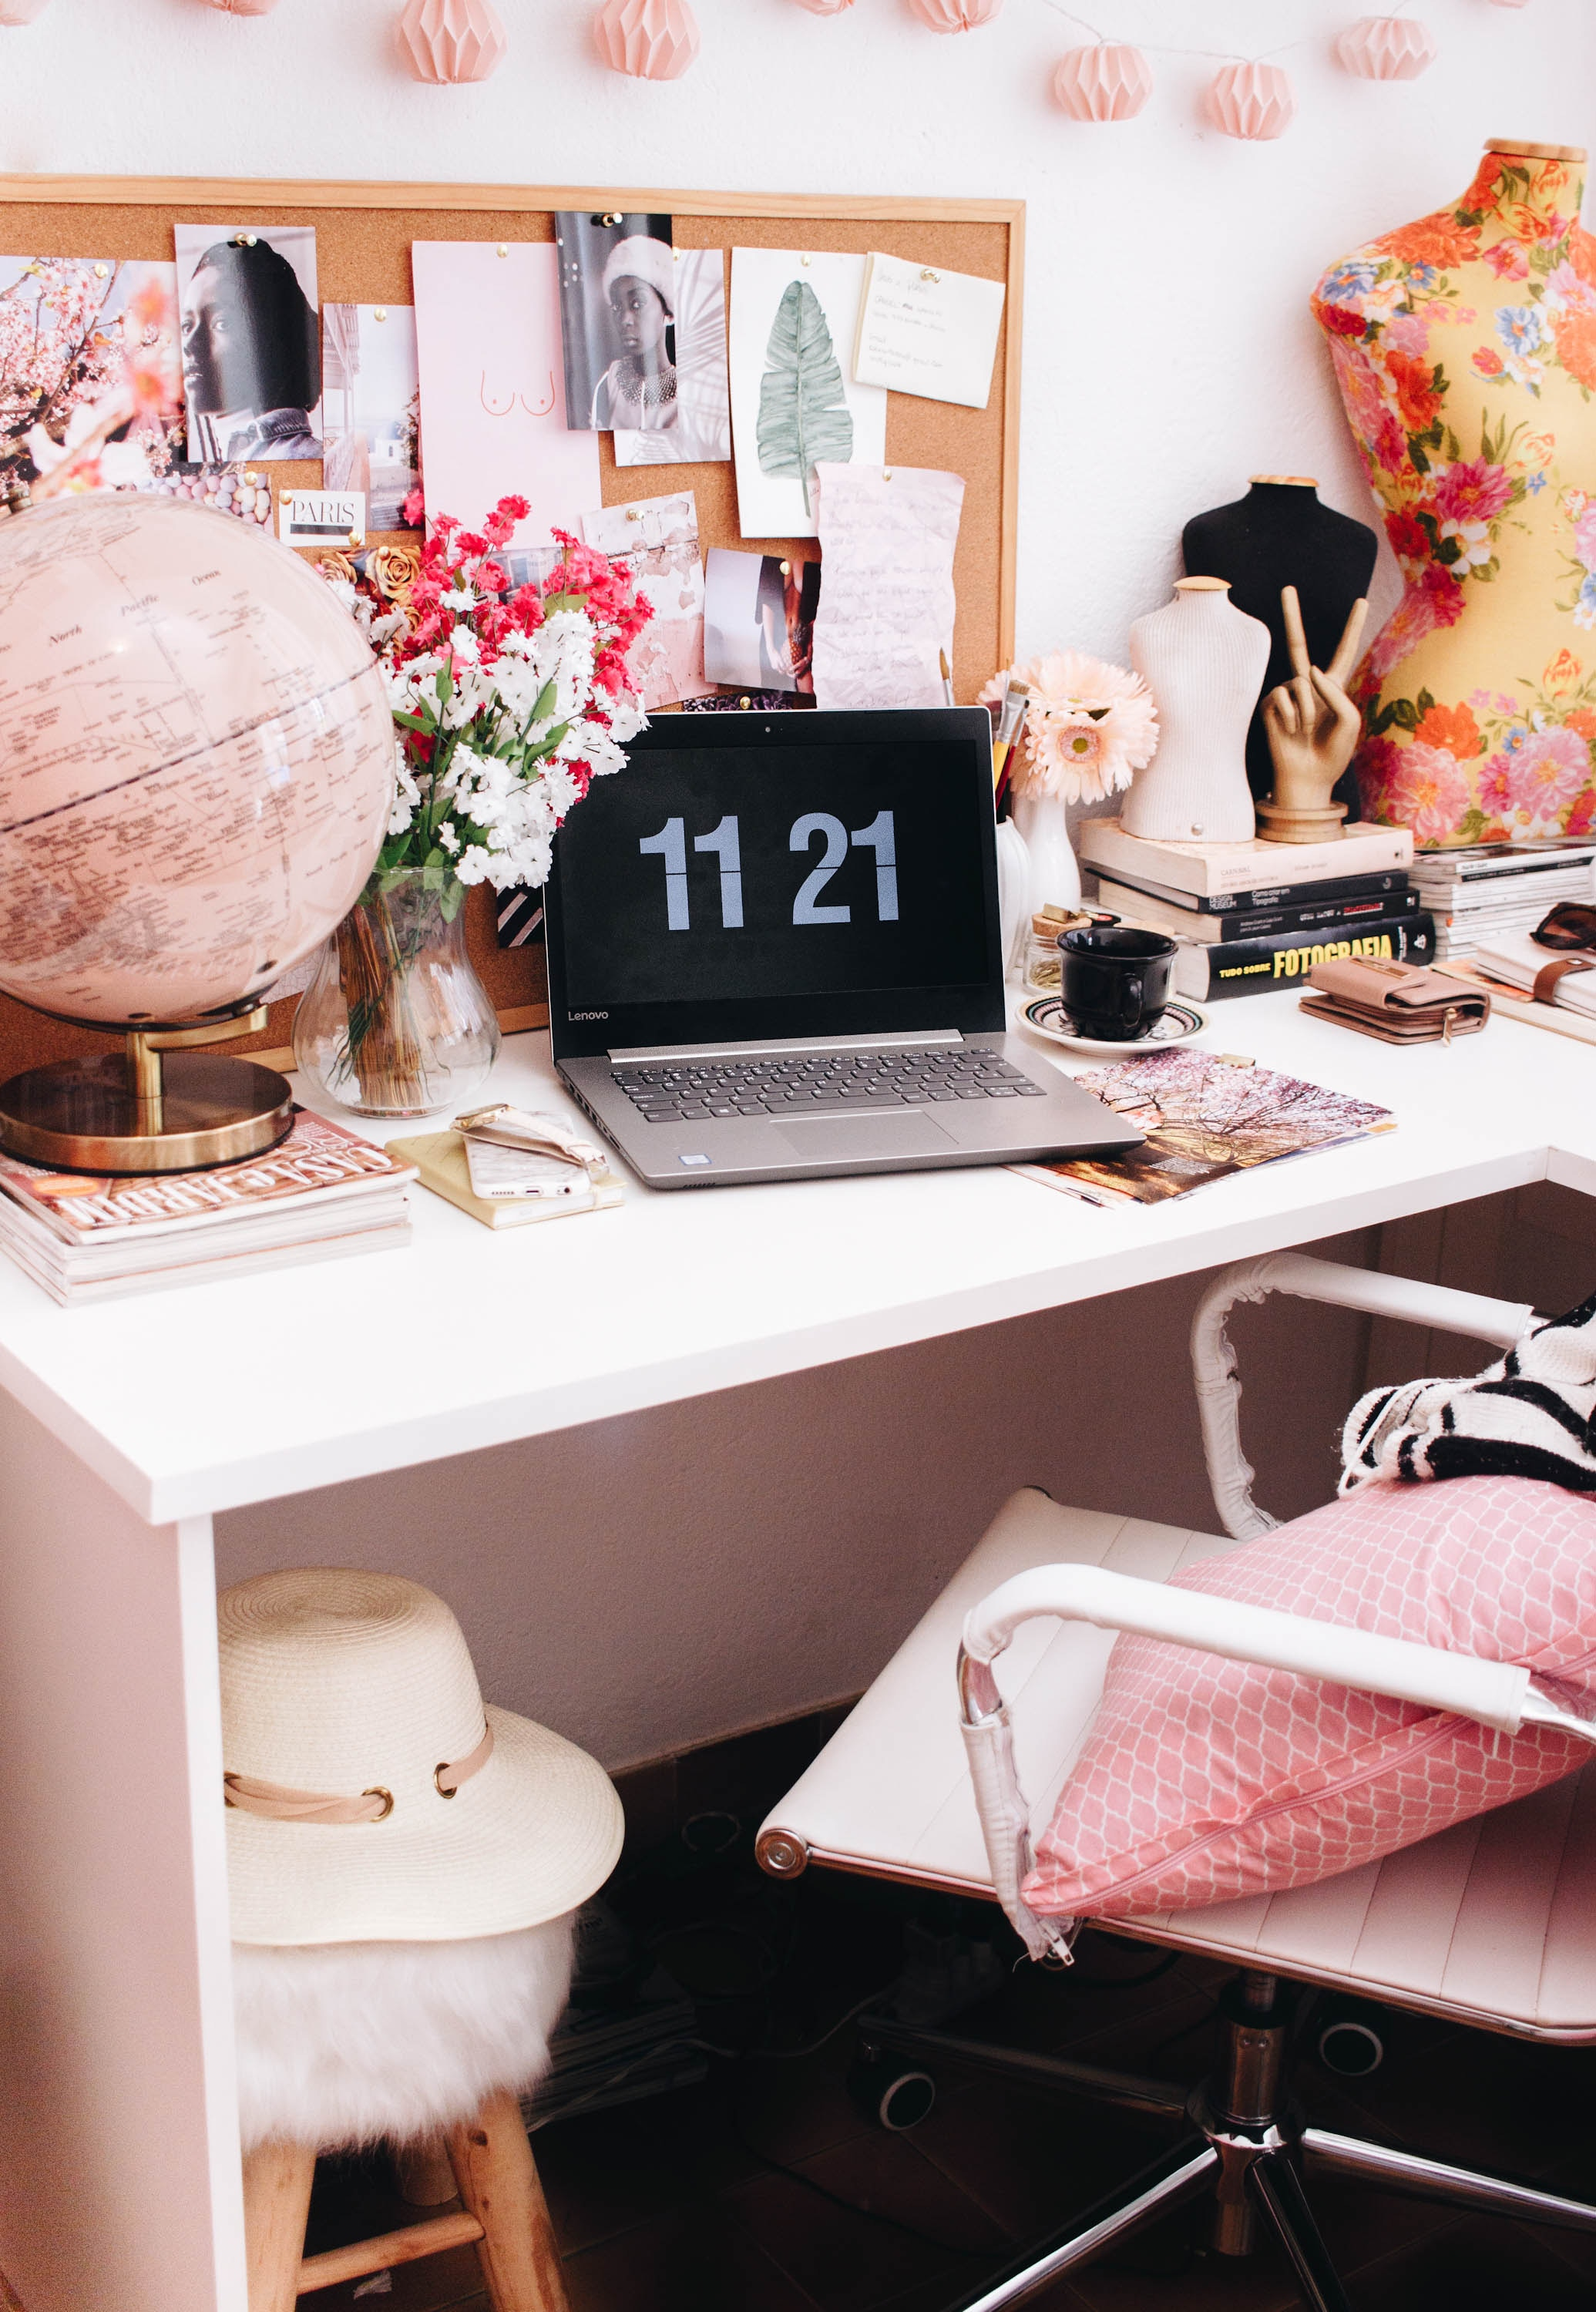 7 Steps to the perfect creative's home office